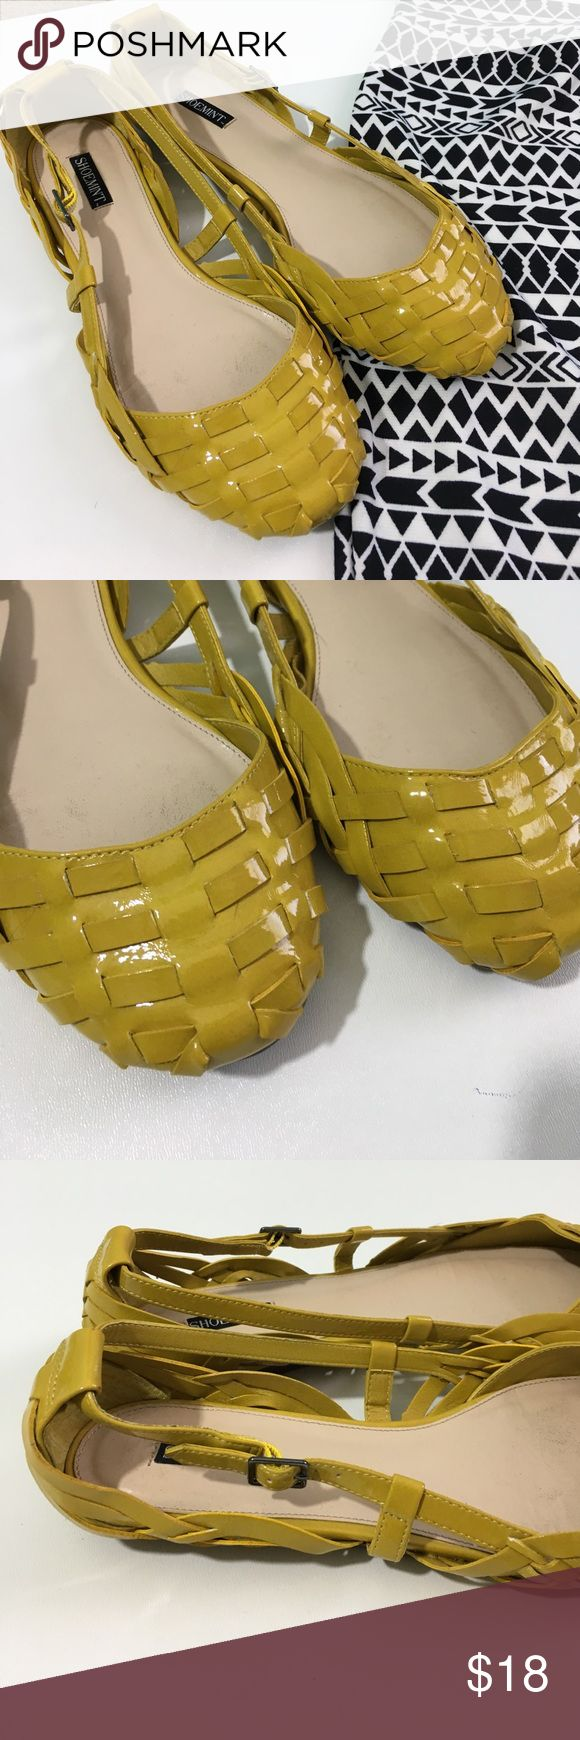 Adorable yellow flats!  These flats are perfect for spring! they were just the wrong shade of yellow for me. They are closer to a mustard yellow. Perfect condition. Shoemint Shoes Flats & Loafers